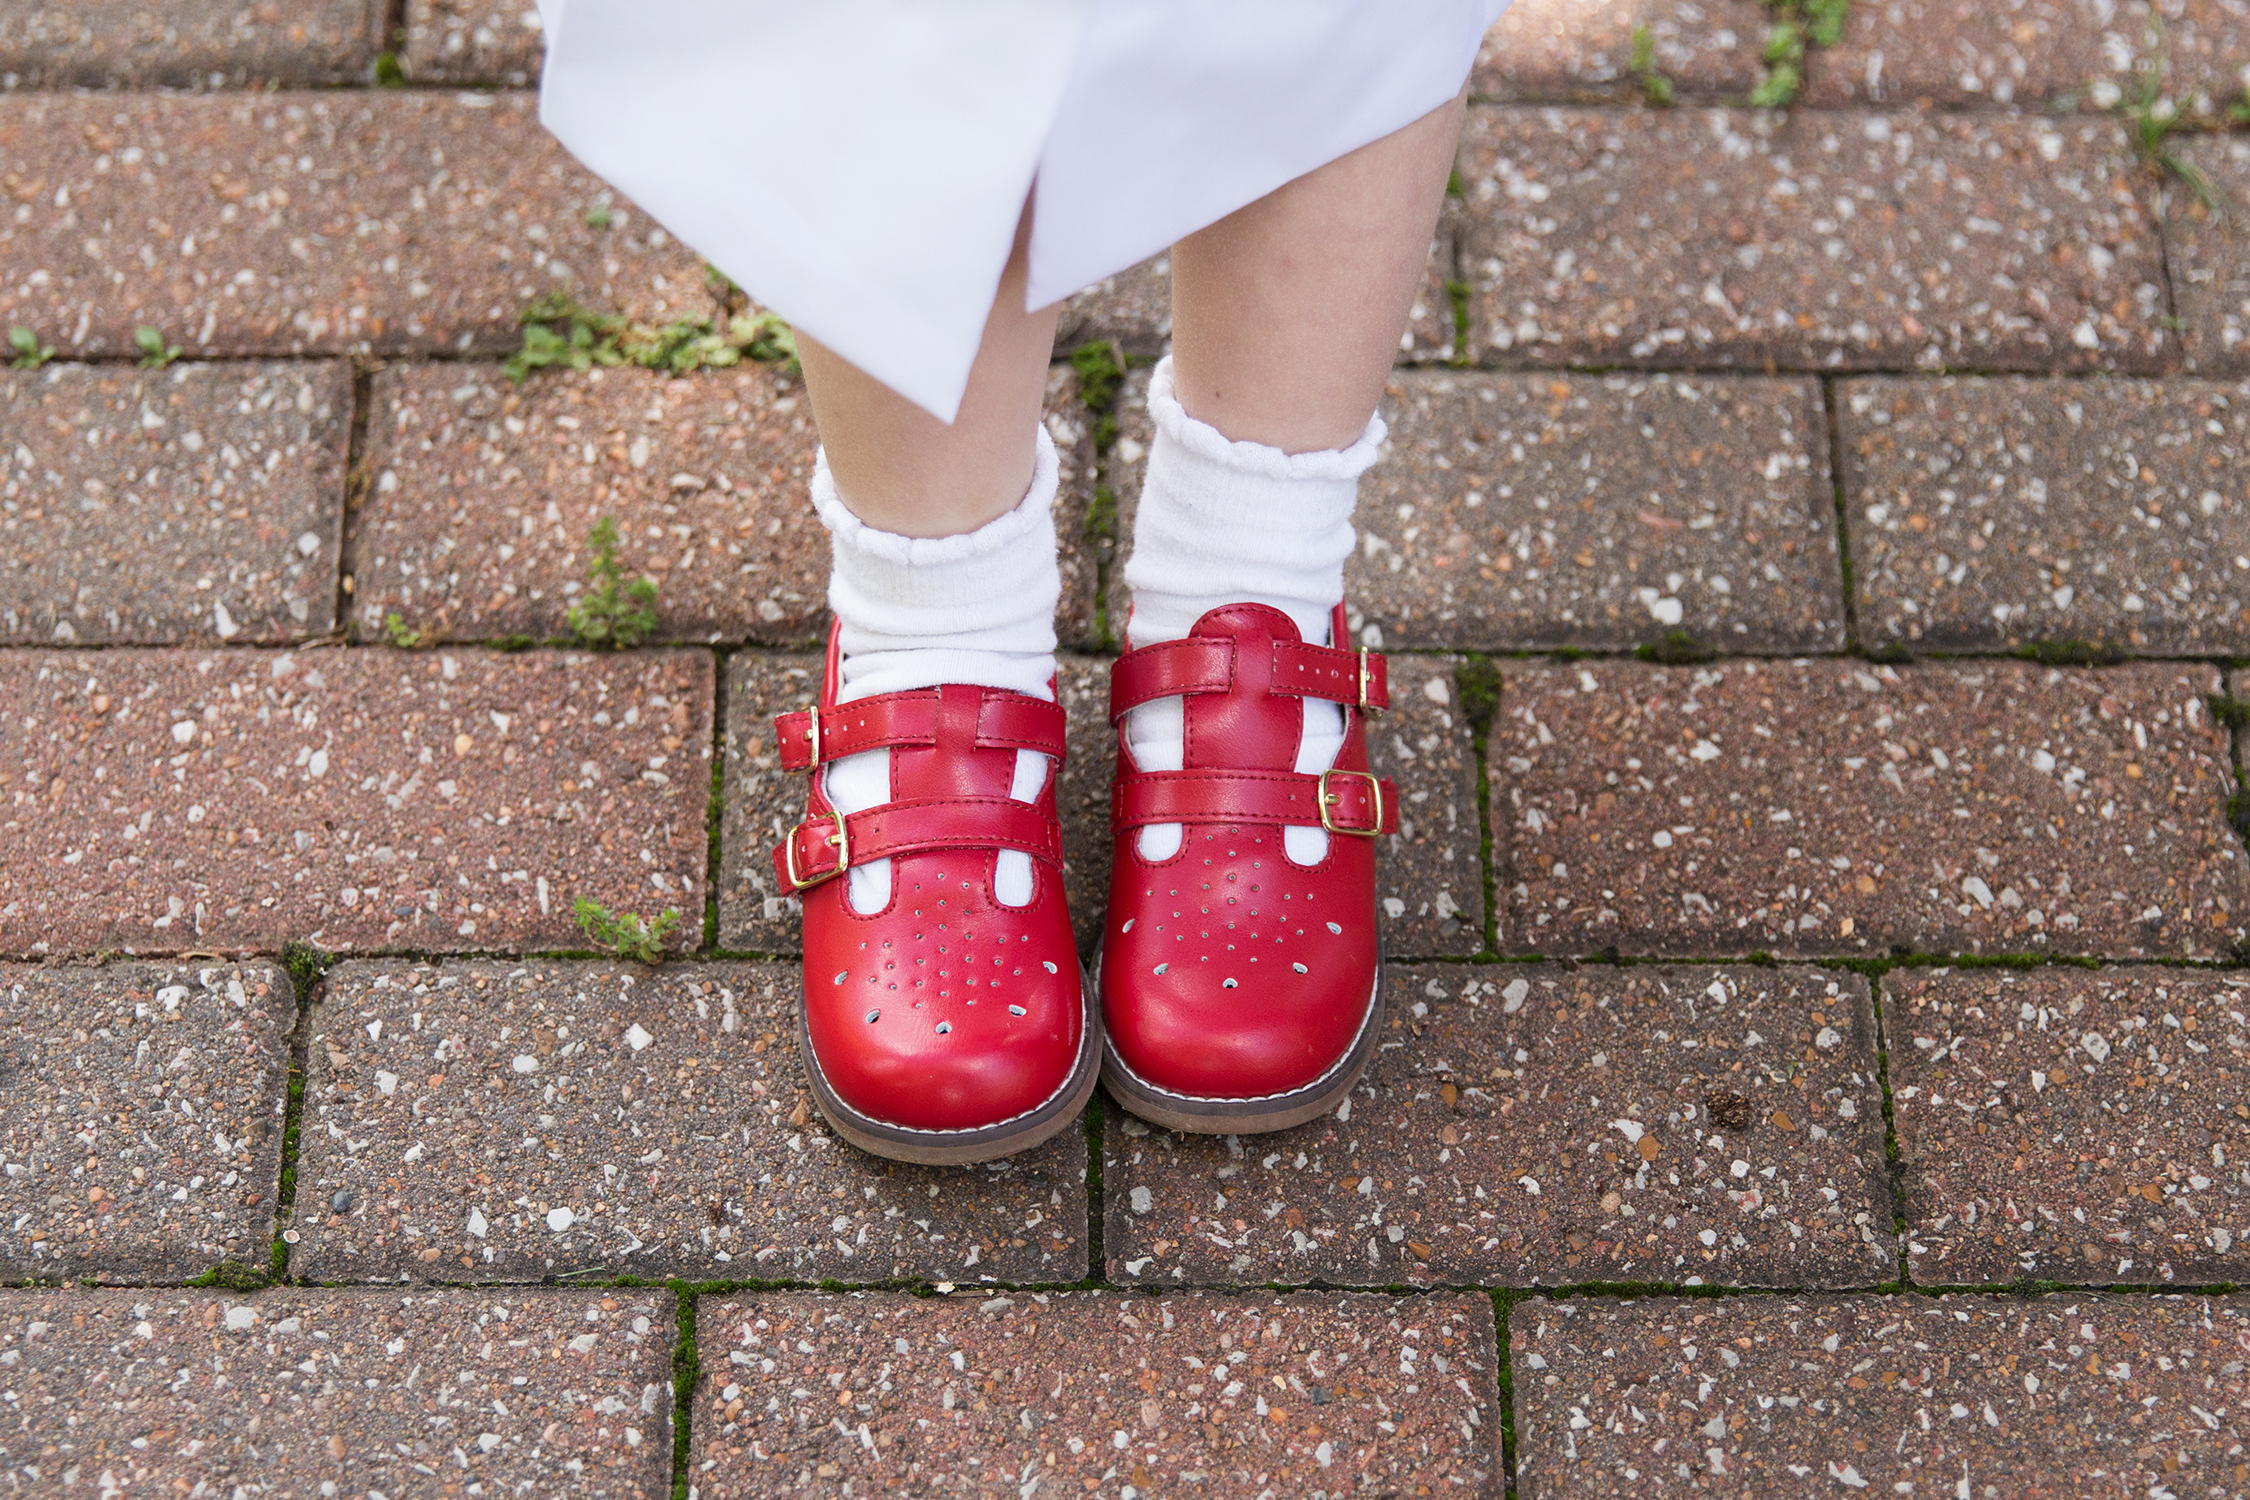 Little girl's red shoes | St. Louis Kid's Photographer